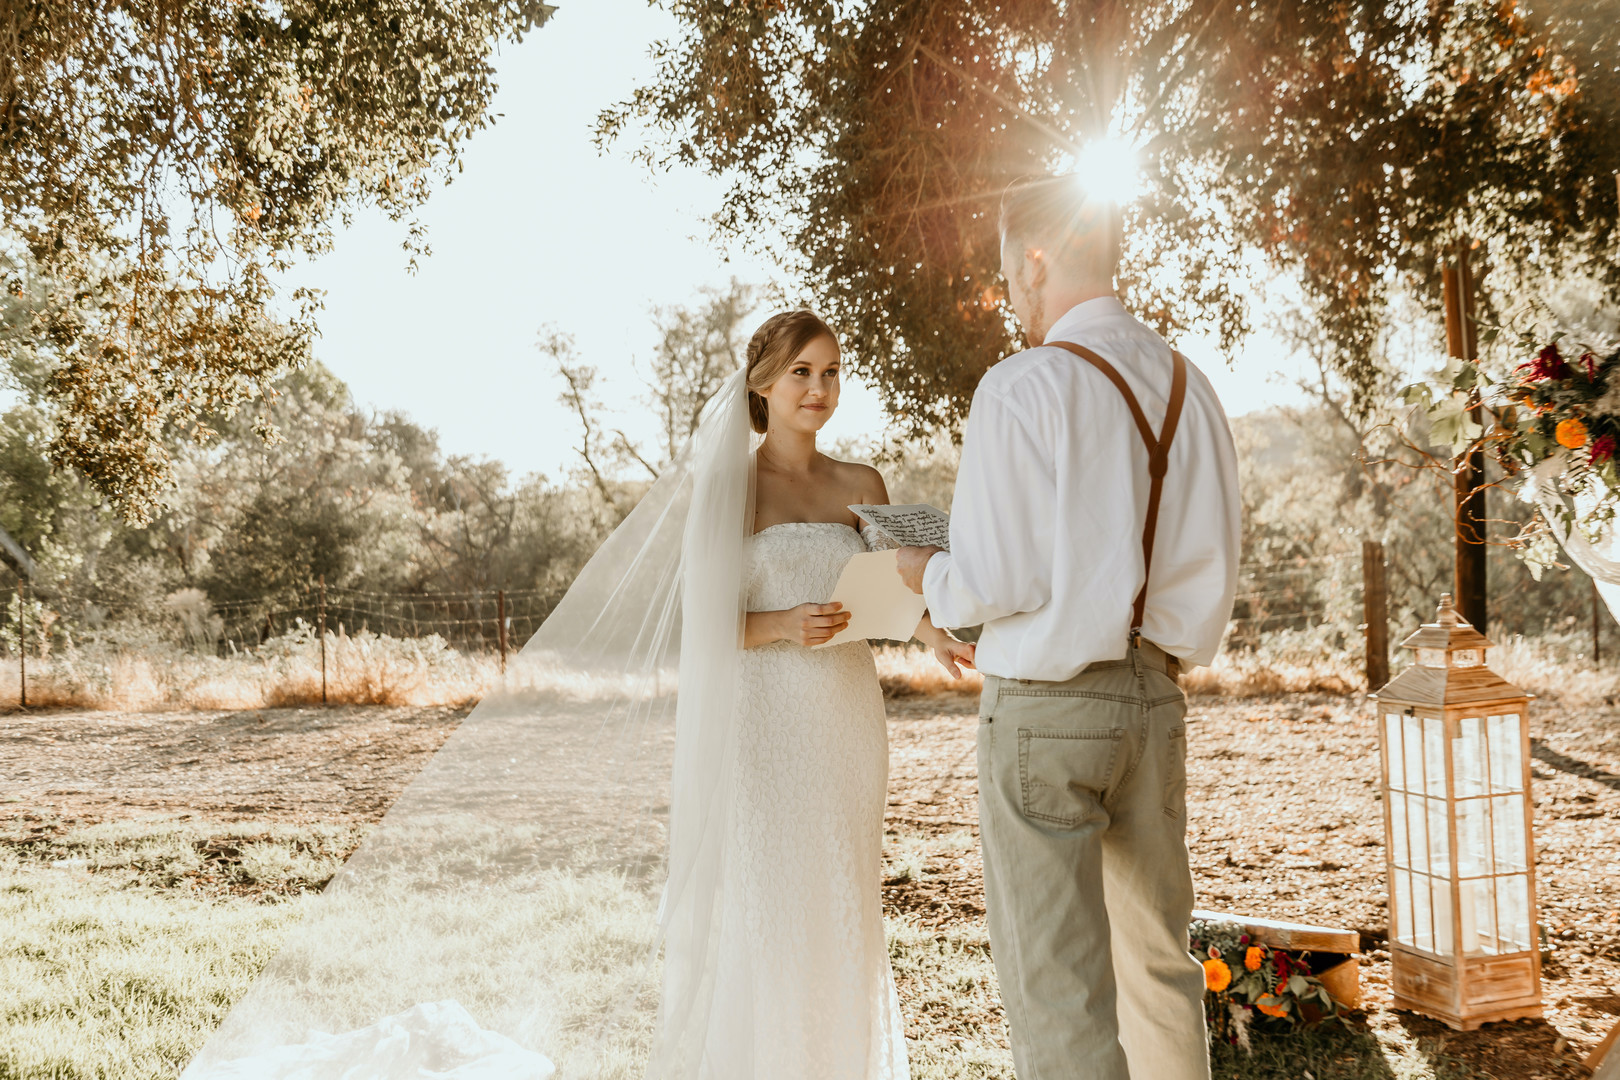 couple during outdoor wedding ceremony with rustic creekside backdrop